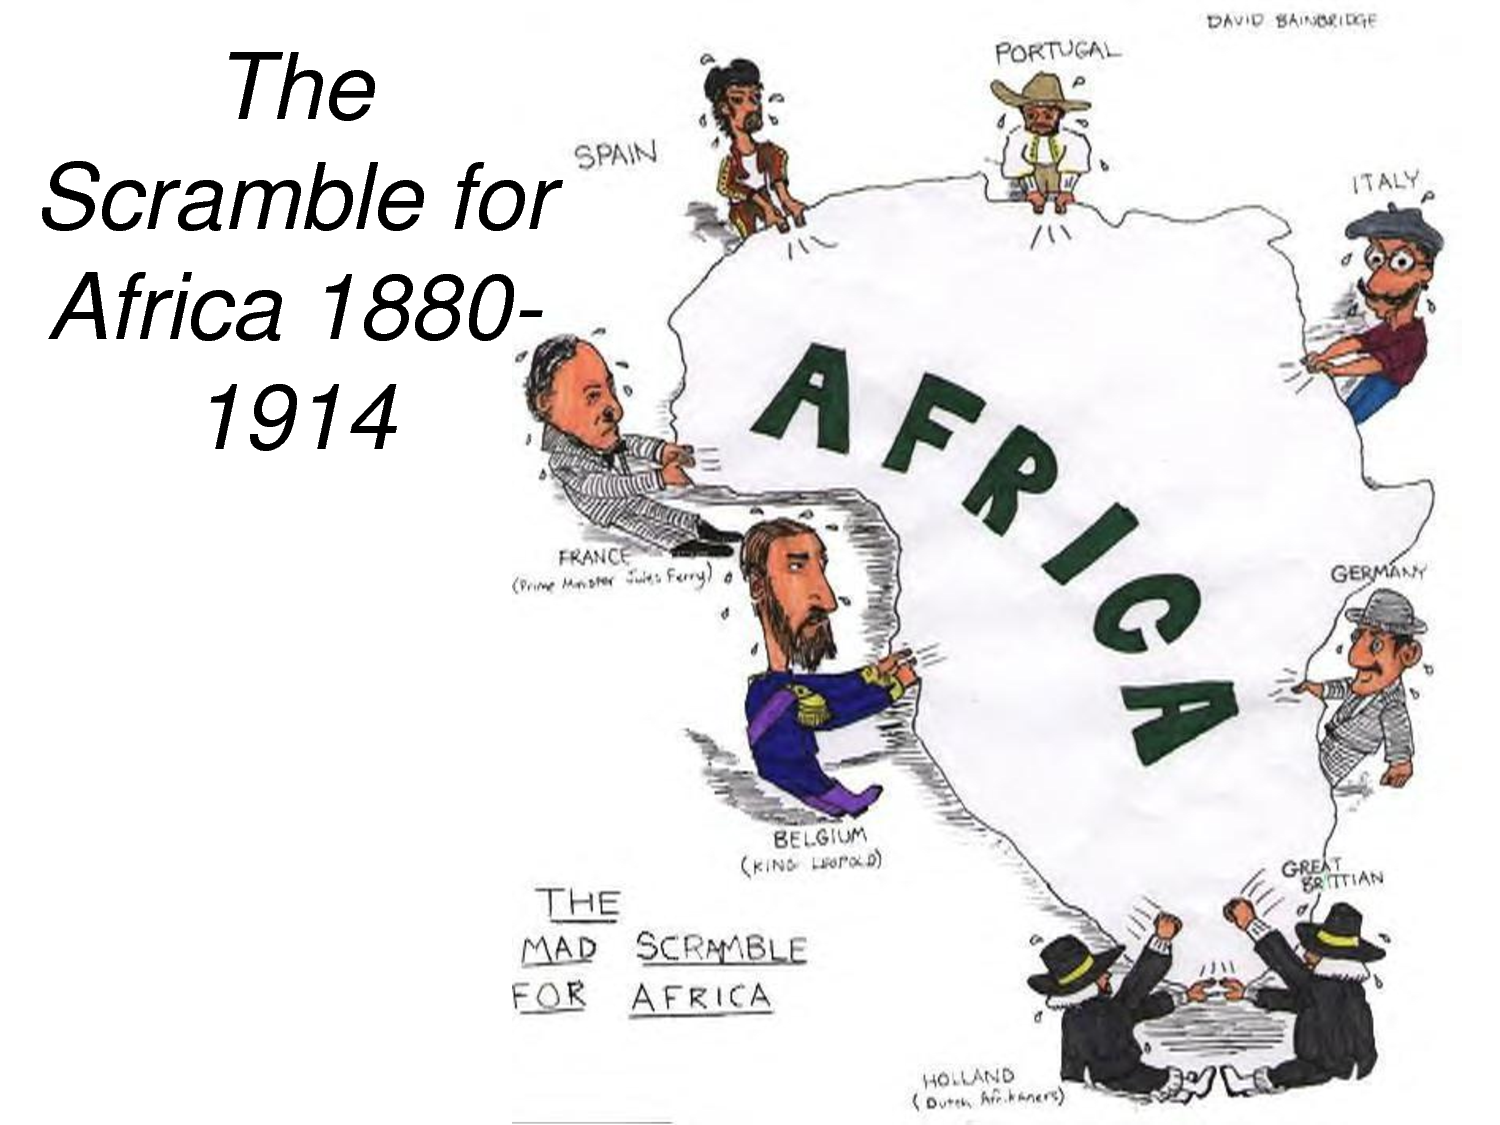 factors that led to scramble and partition of africa